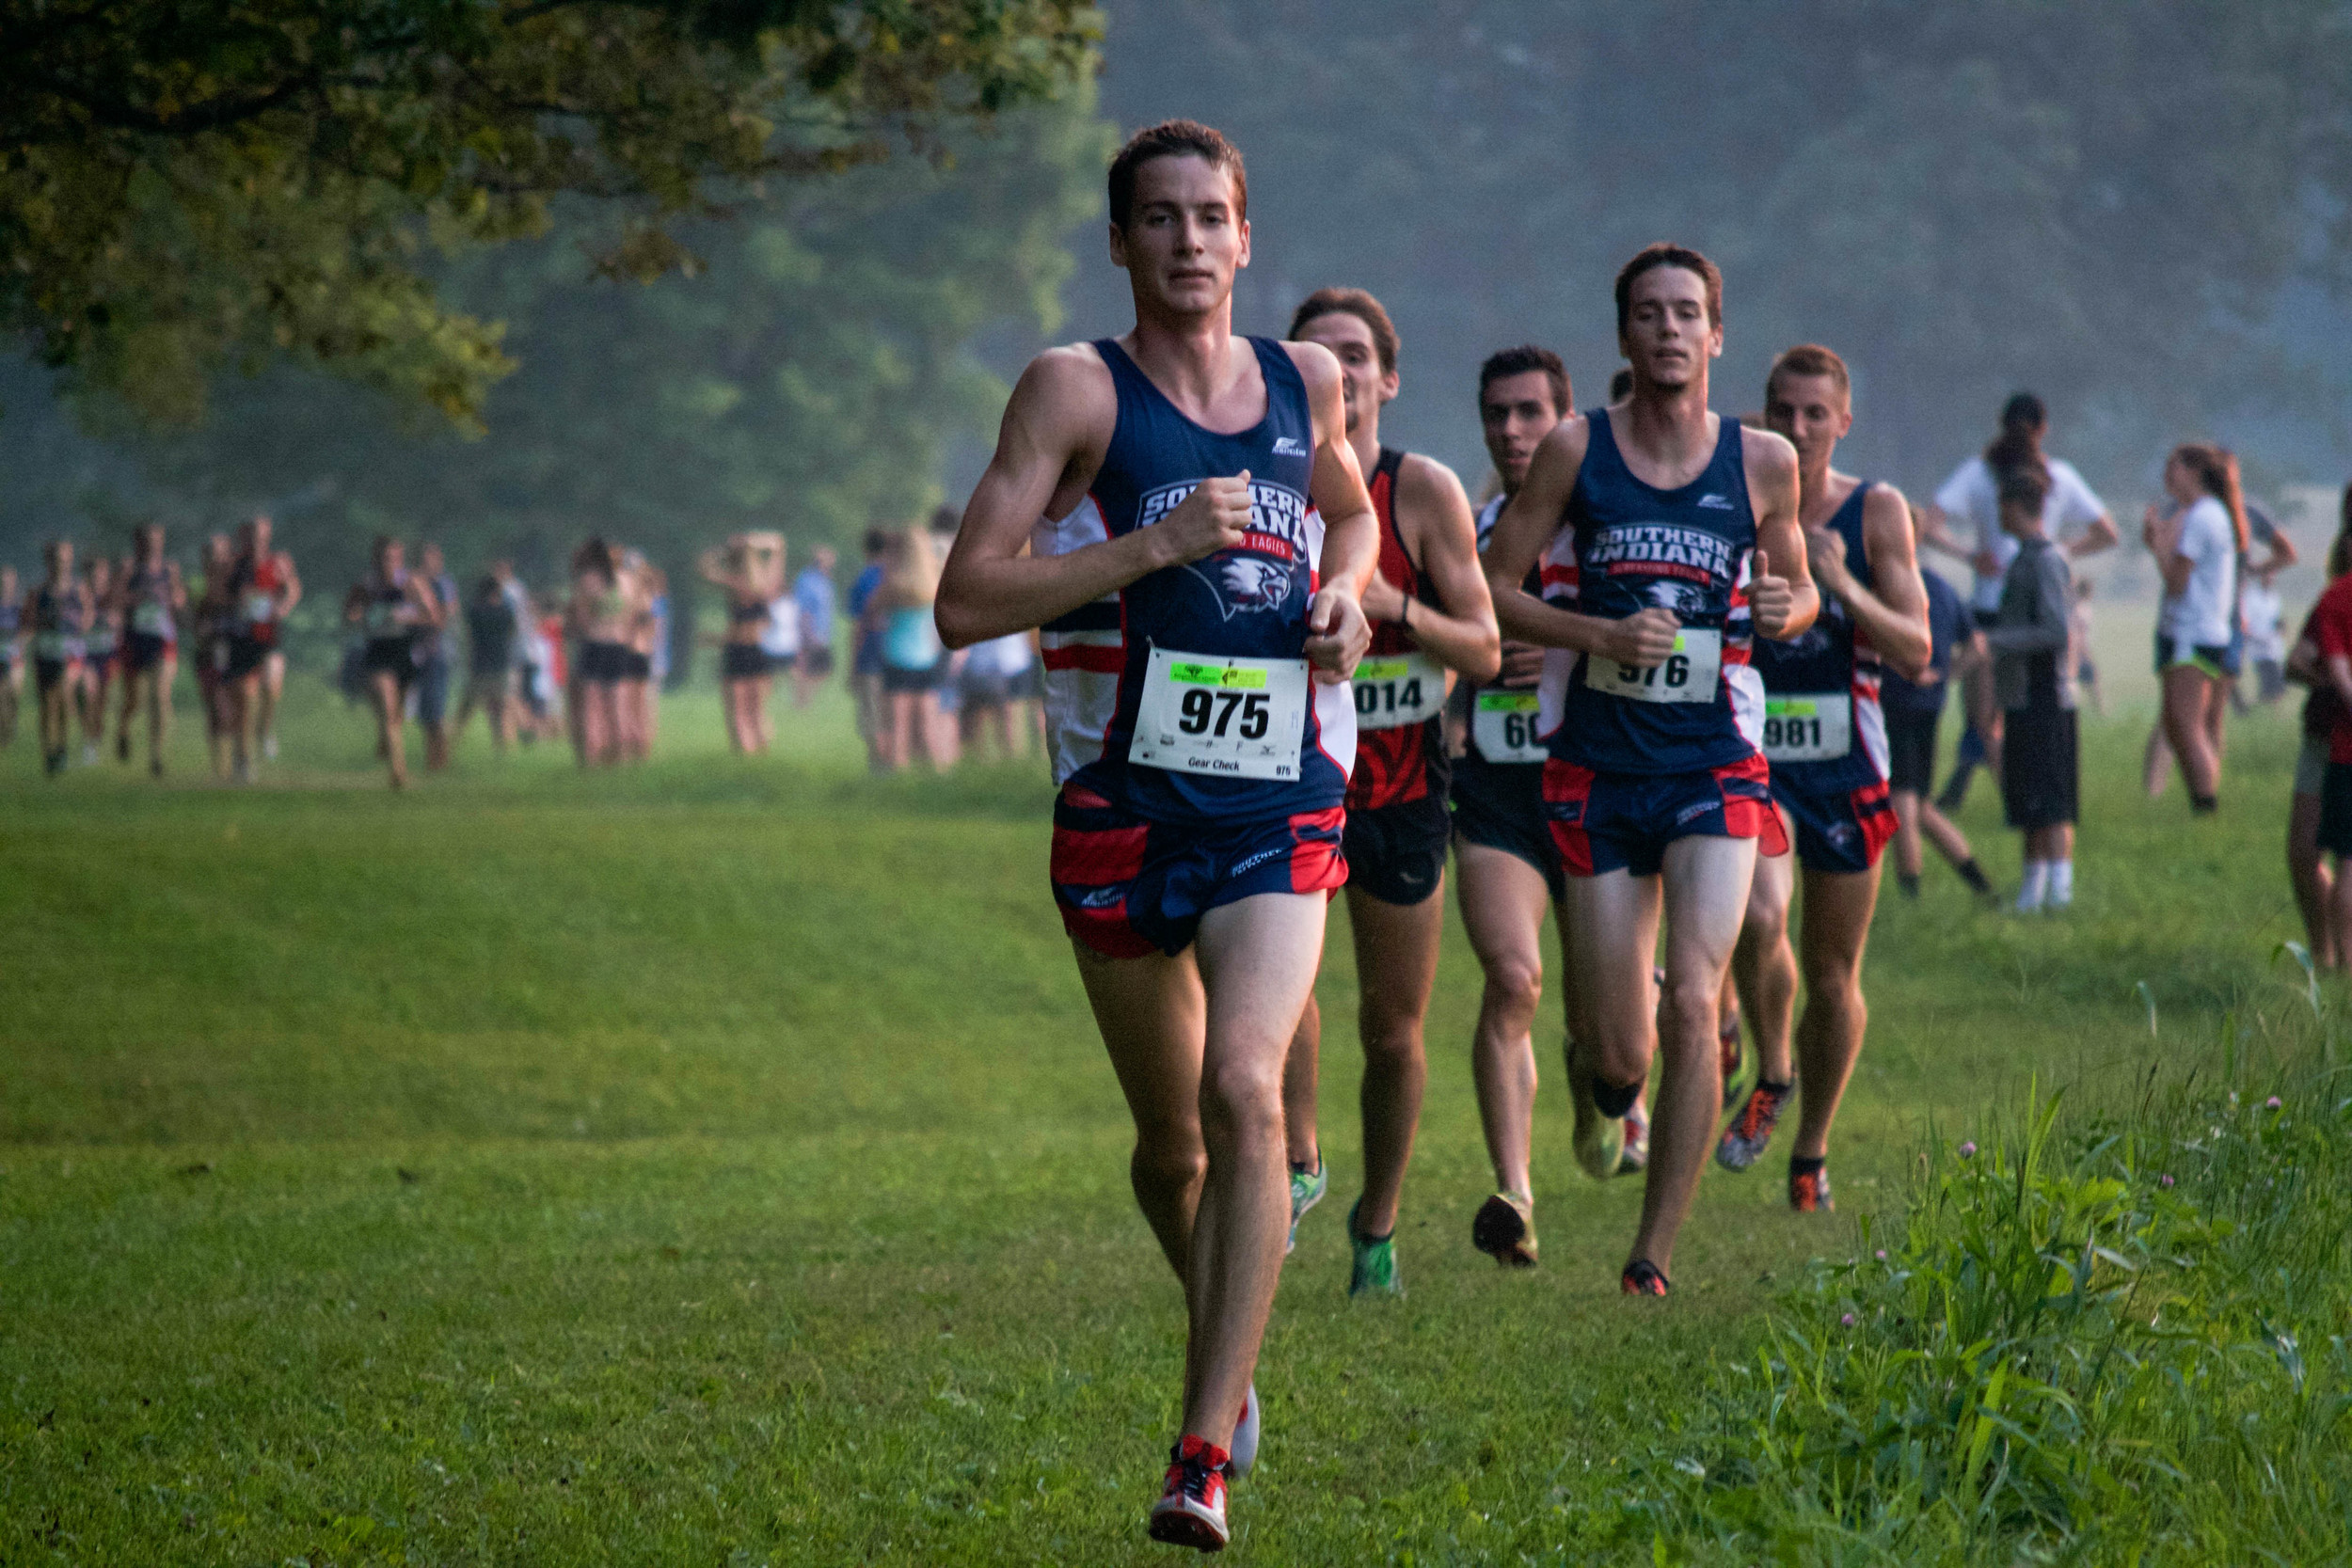 Johnnie Guy, a senior engineering major, leads the pack during the Stegemoller Classic in which the men's cross country team finished first at the beginning of the season. Their success this year led to coach Hillyard being named coach of the year.  (Shot for The Shield)